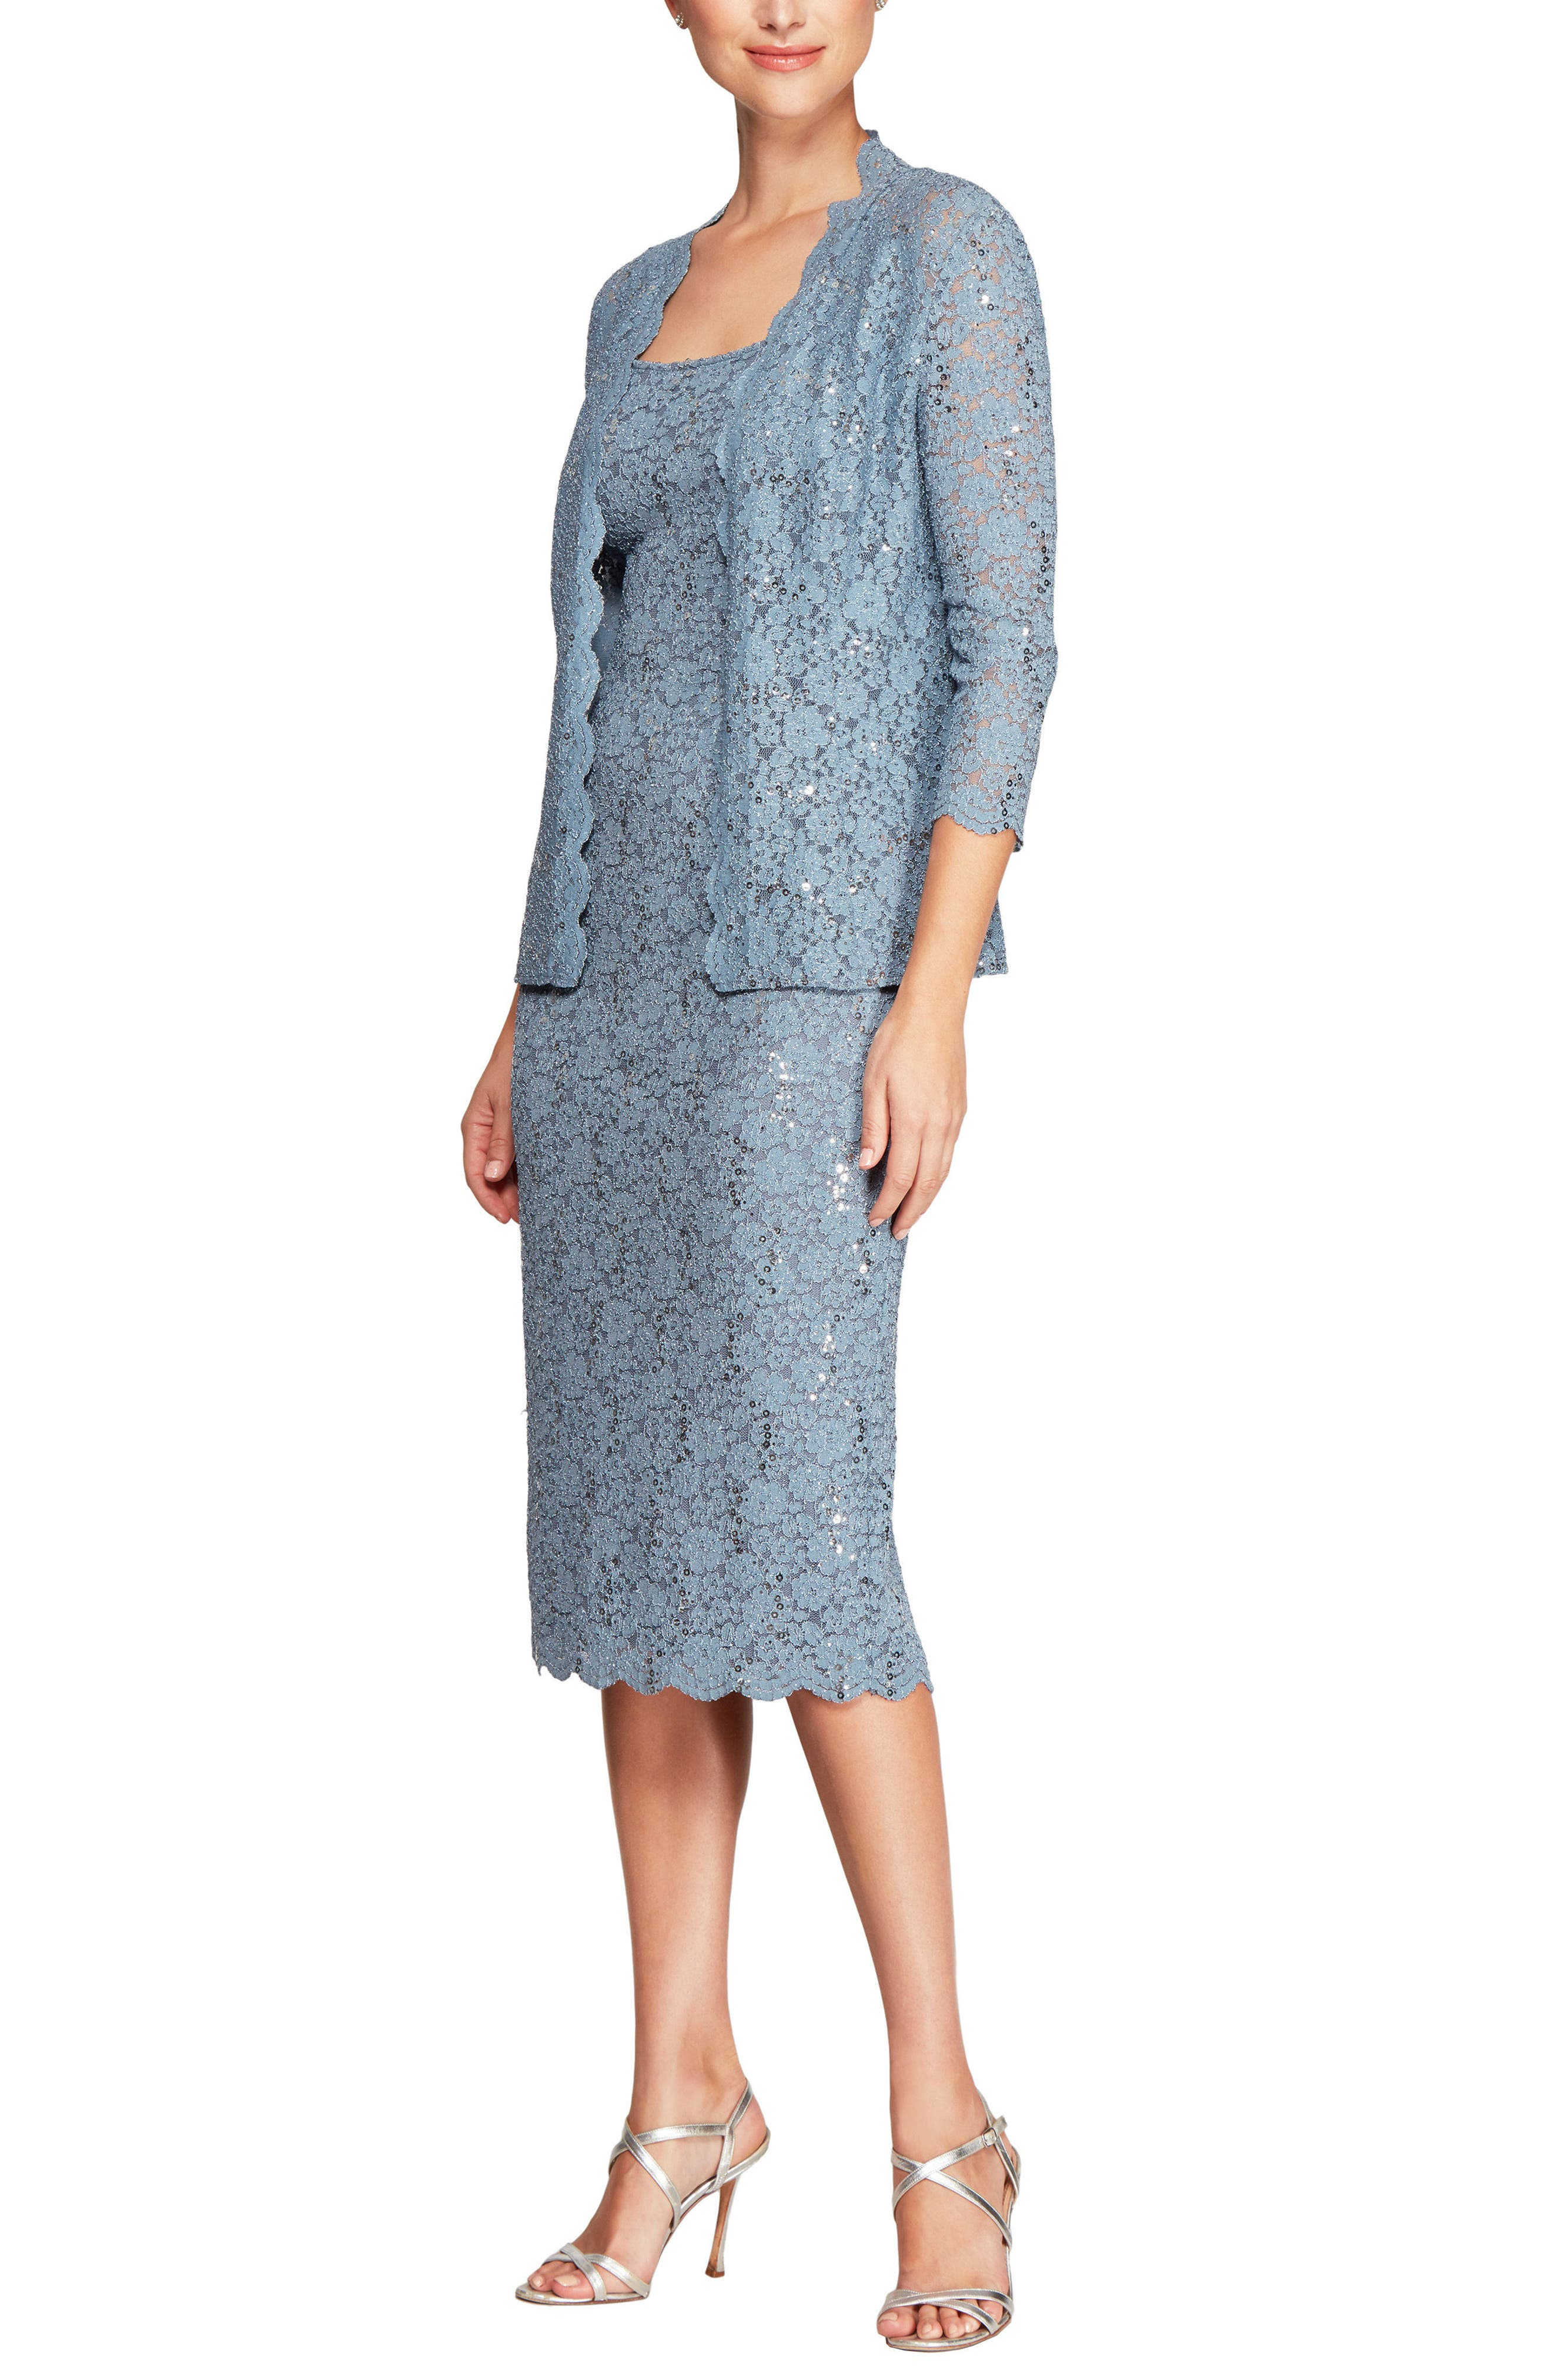 Main Image - Alex Evenings Sequined Lace Sheath Dress with Jacket